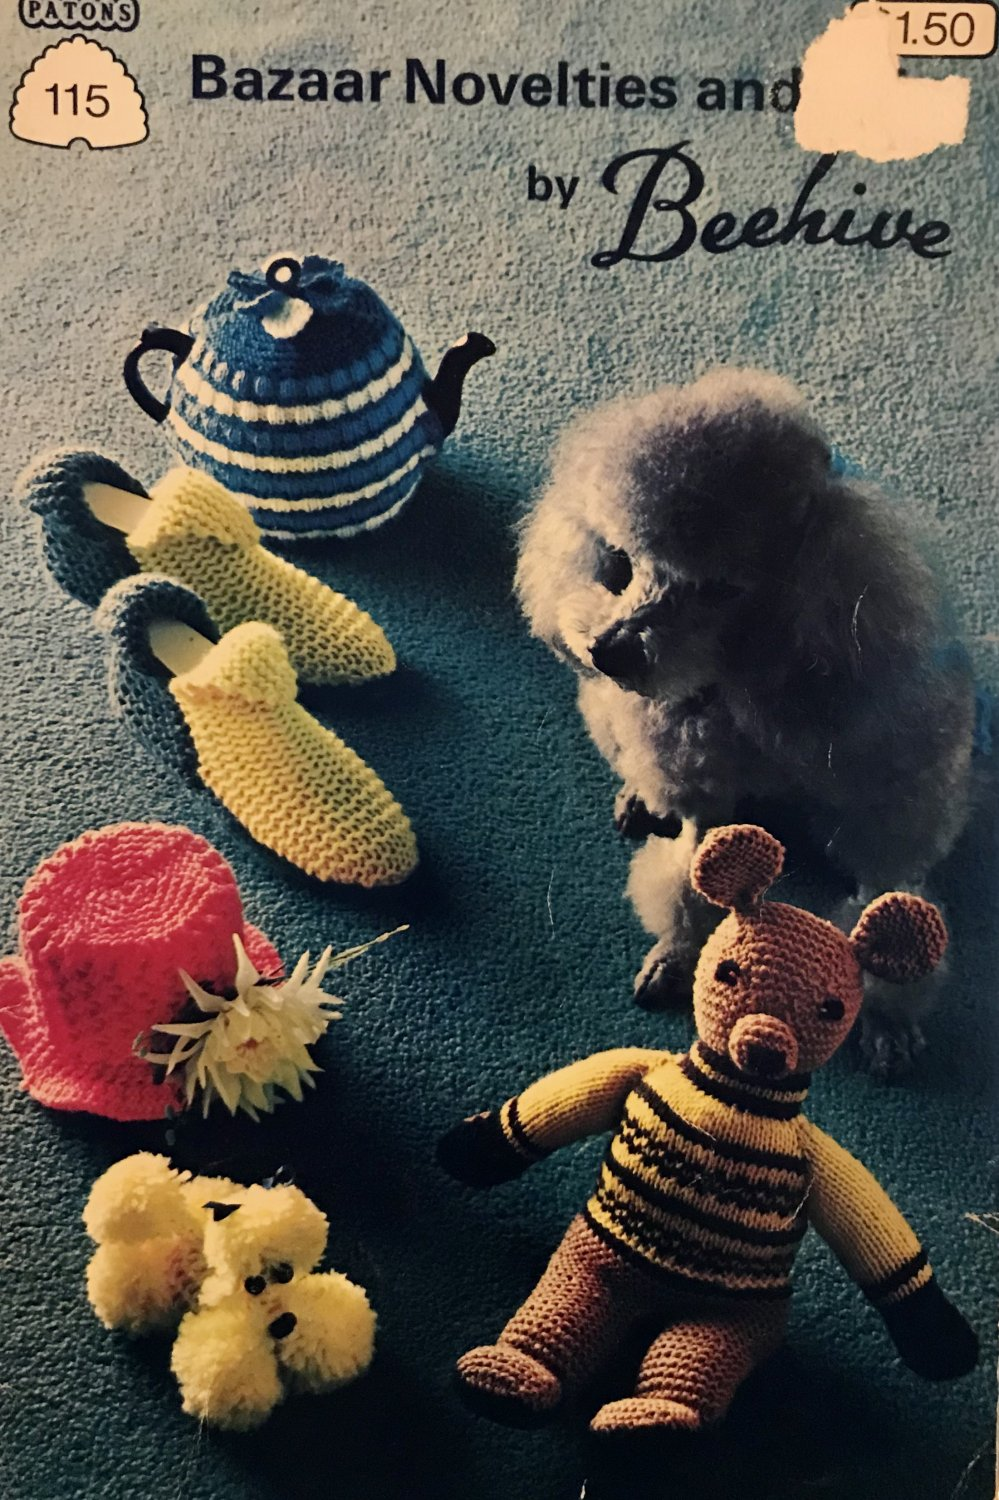 Bazaar Novelties 115 7115 Patons Beehive Knitting Pattern for toys Tea cozies and more!